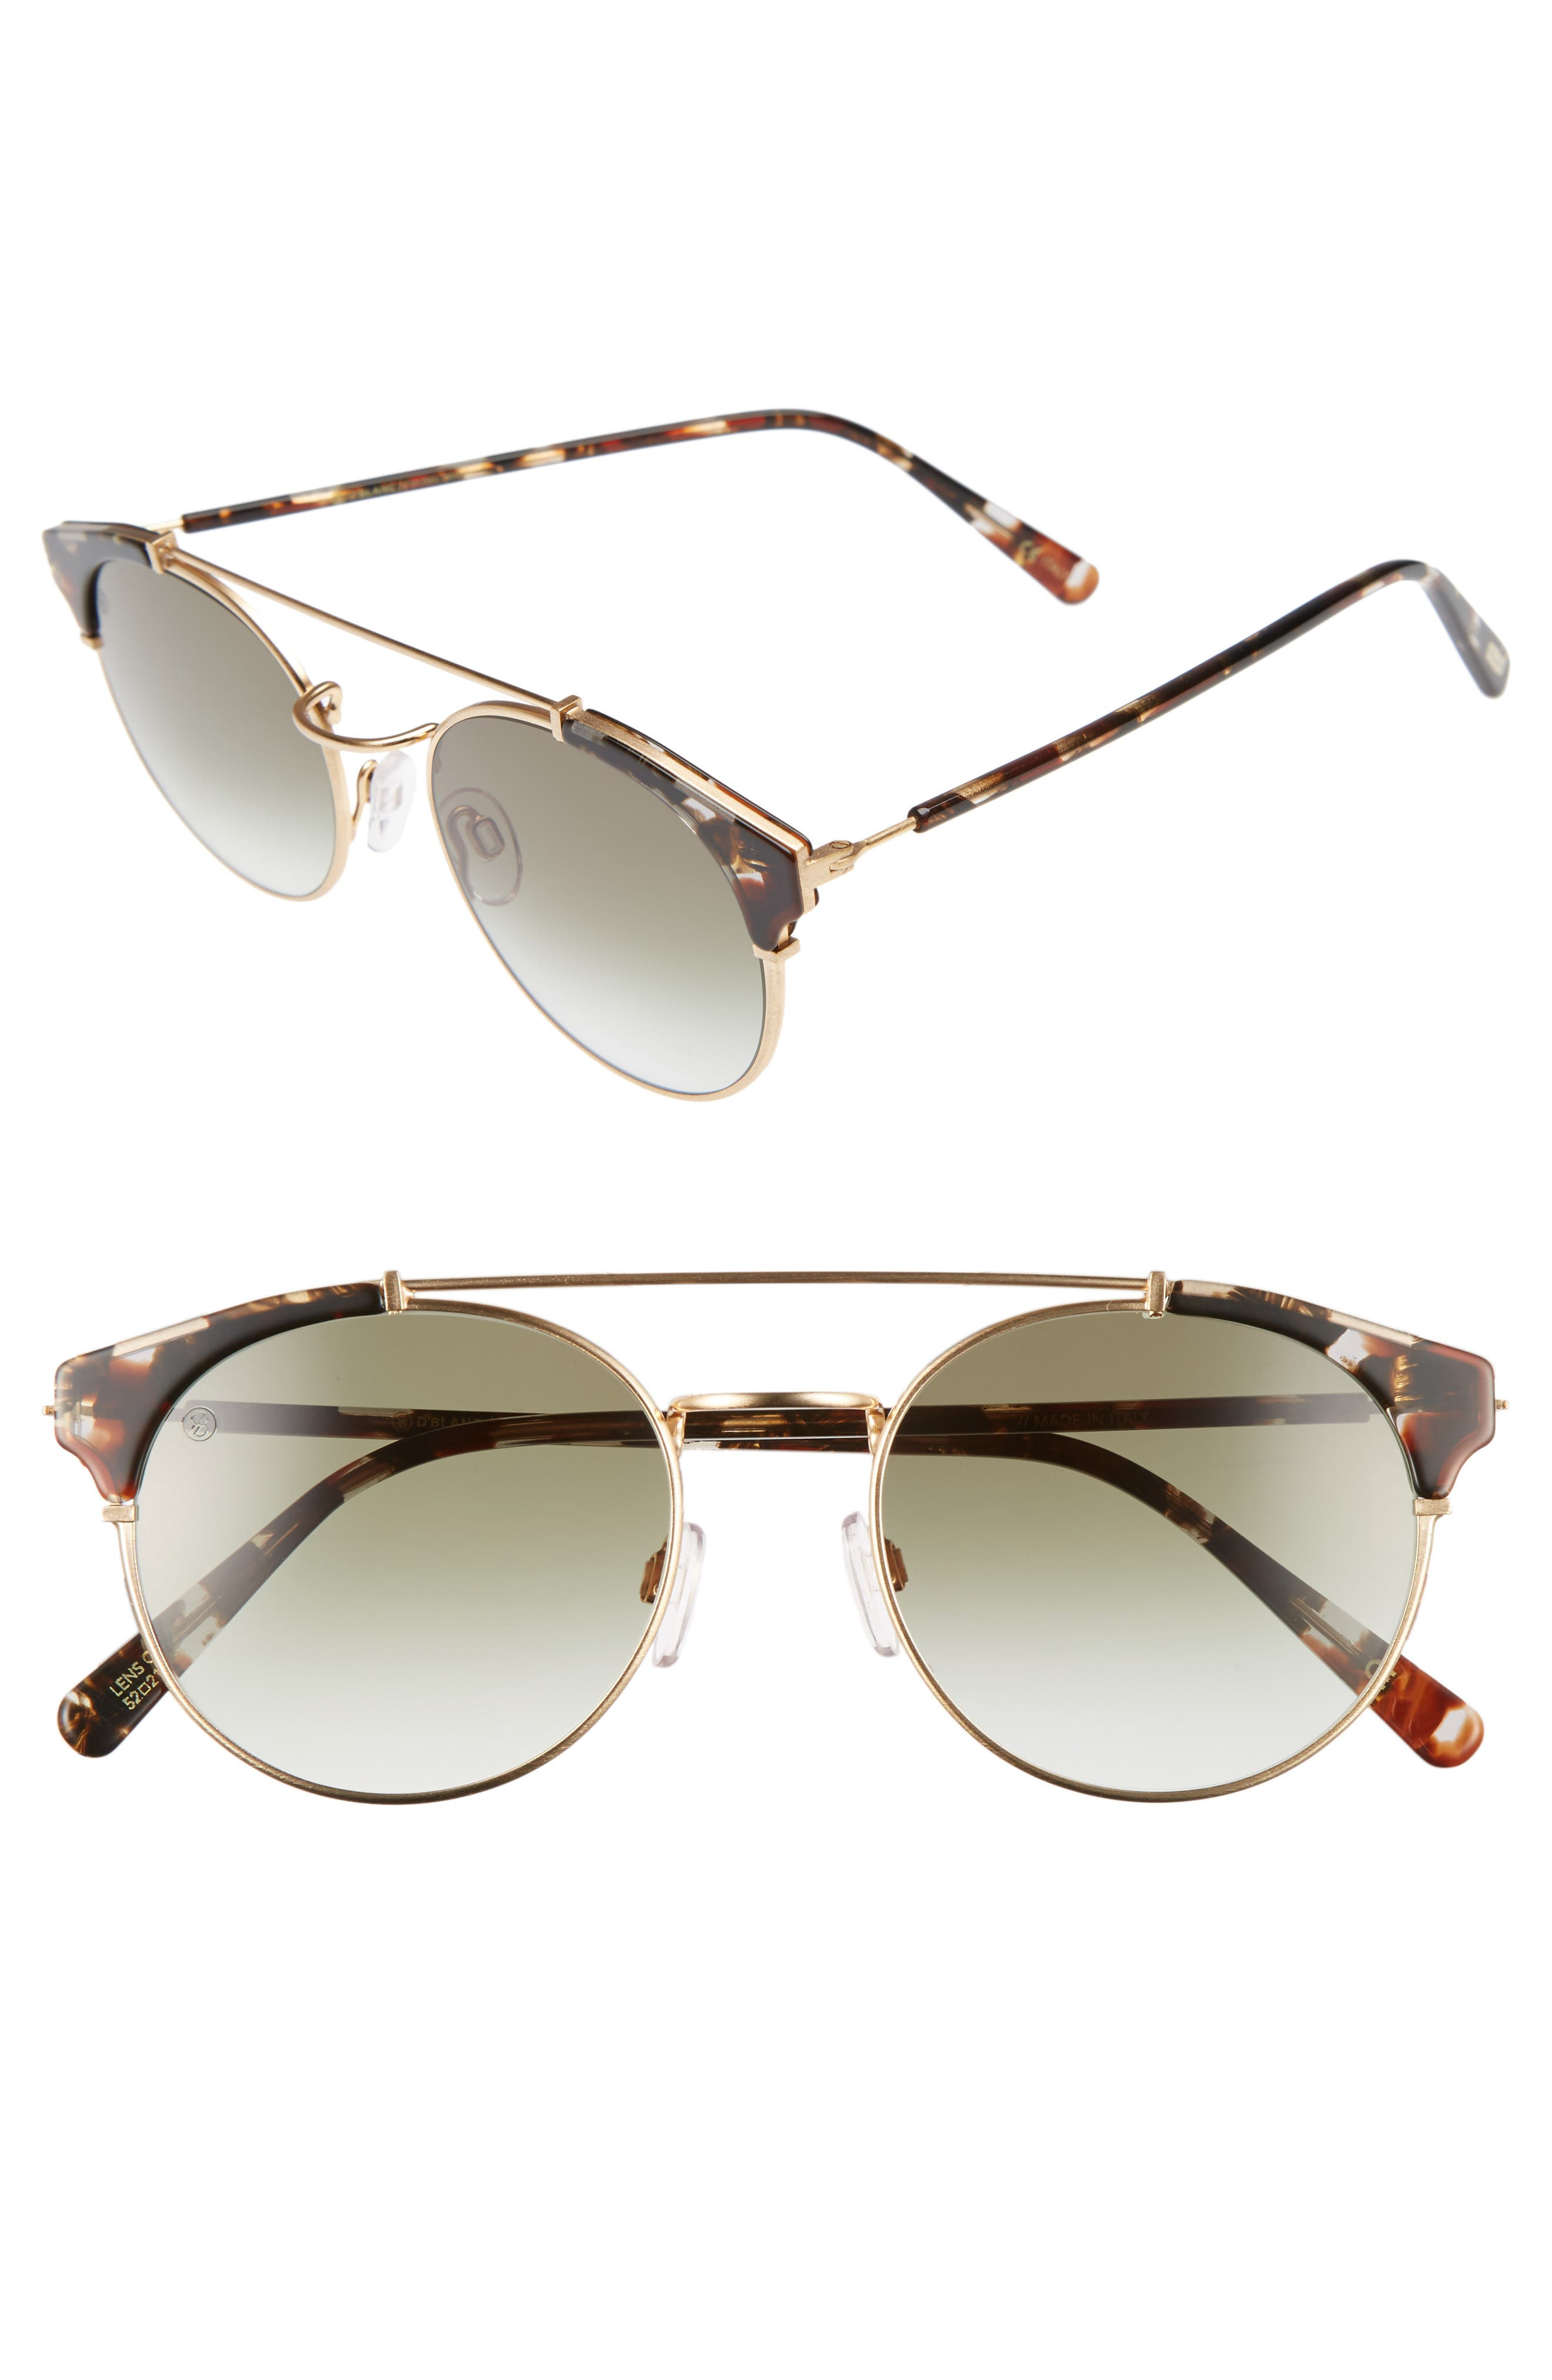 Alternate Image 1 Selected - D'BLANC x Amuse Society Dosed Marquis 52mm Gradient Round Aviator Sunglasses